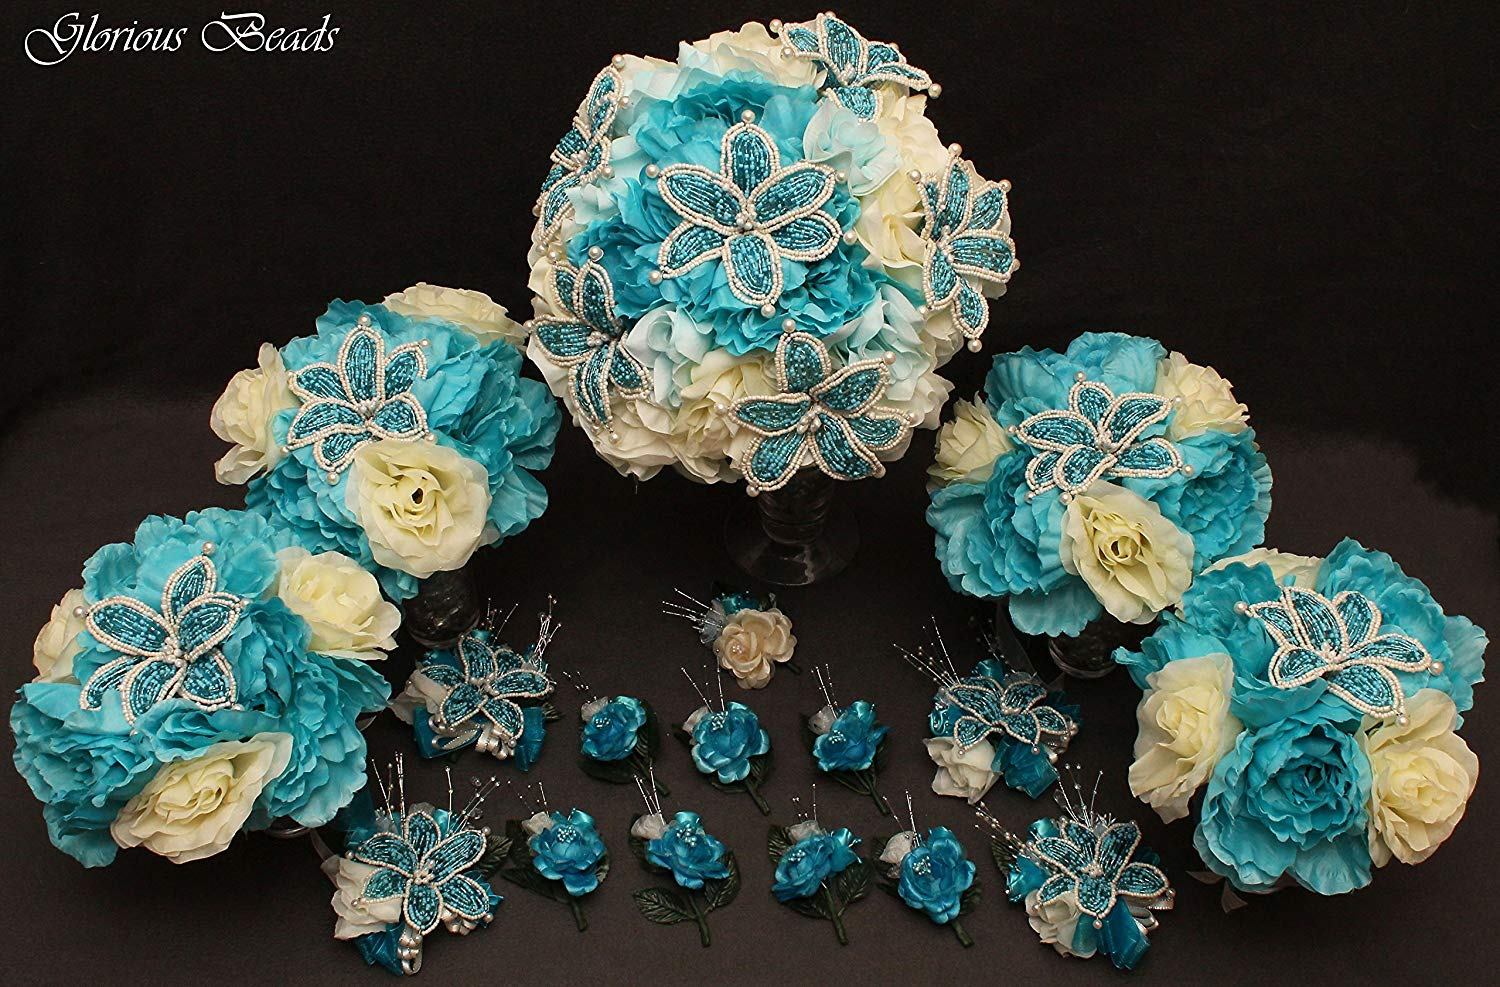 Turquoise and Ivory Beaded Lily Bridal Wedding Flower 18 piece set with Peonies and Roses~ Unique French beaded flowers. Includes Bouquets Corsages and Boutonnieres